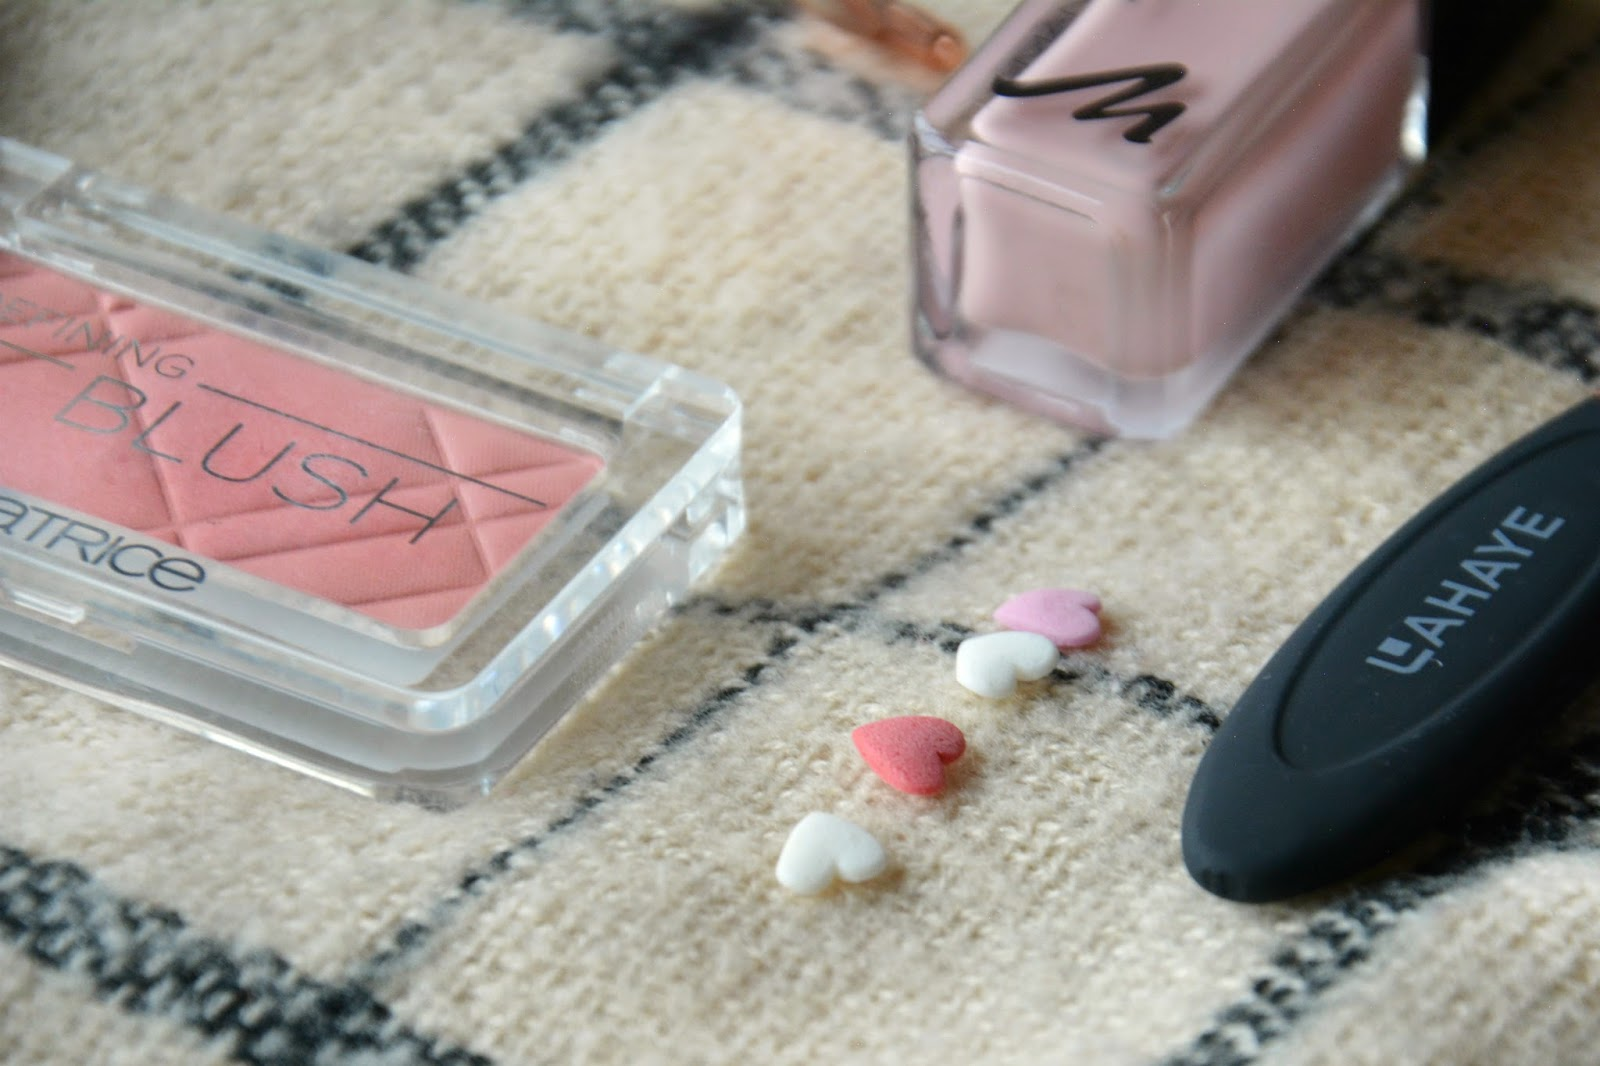 Patrice Defining Blush, Lahaye Brushes, Manhattan Last & Shine Nail Polish, Zara Scarf